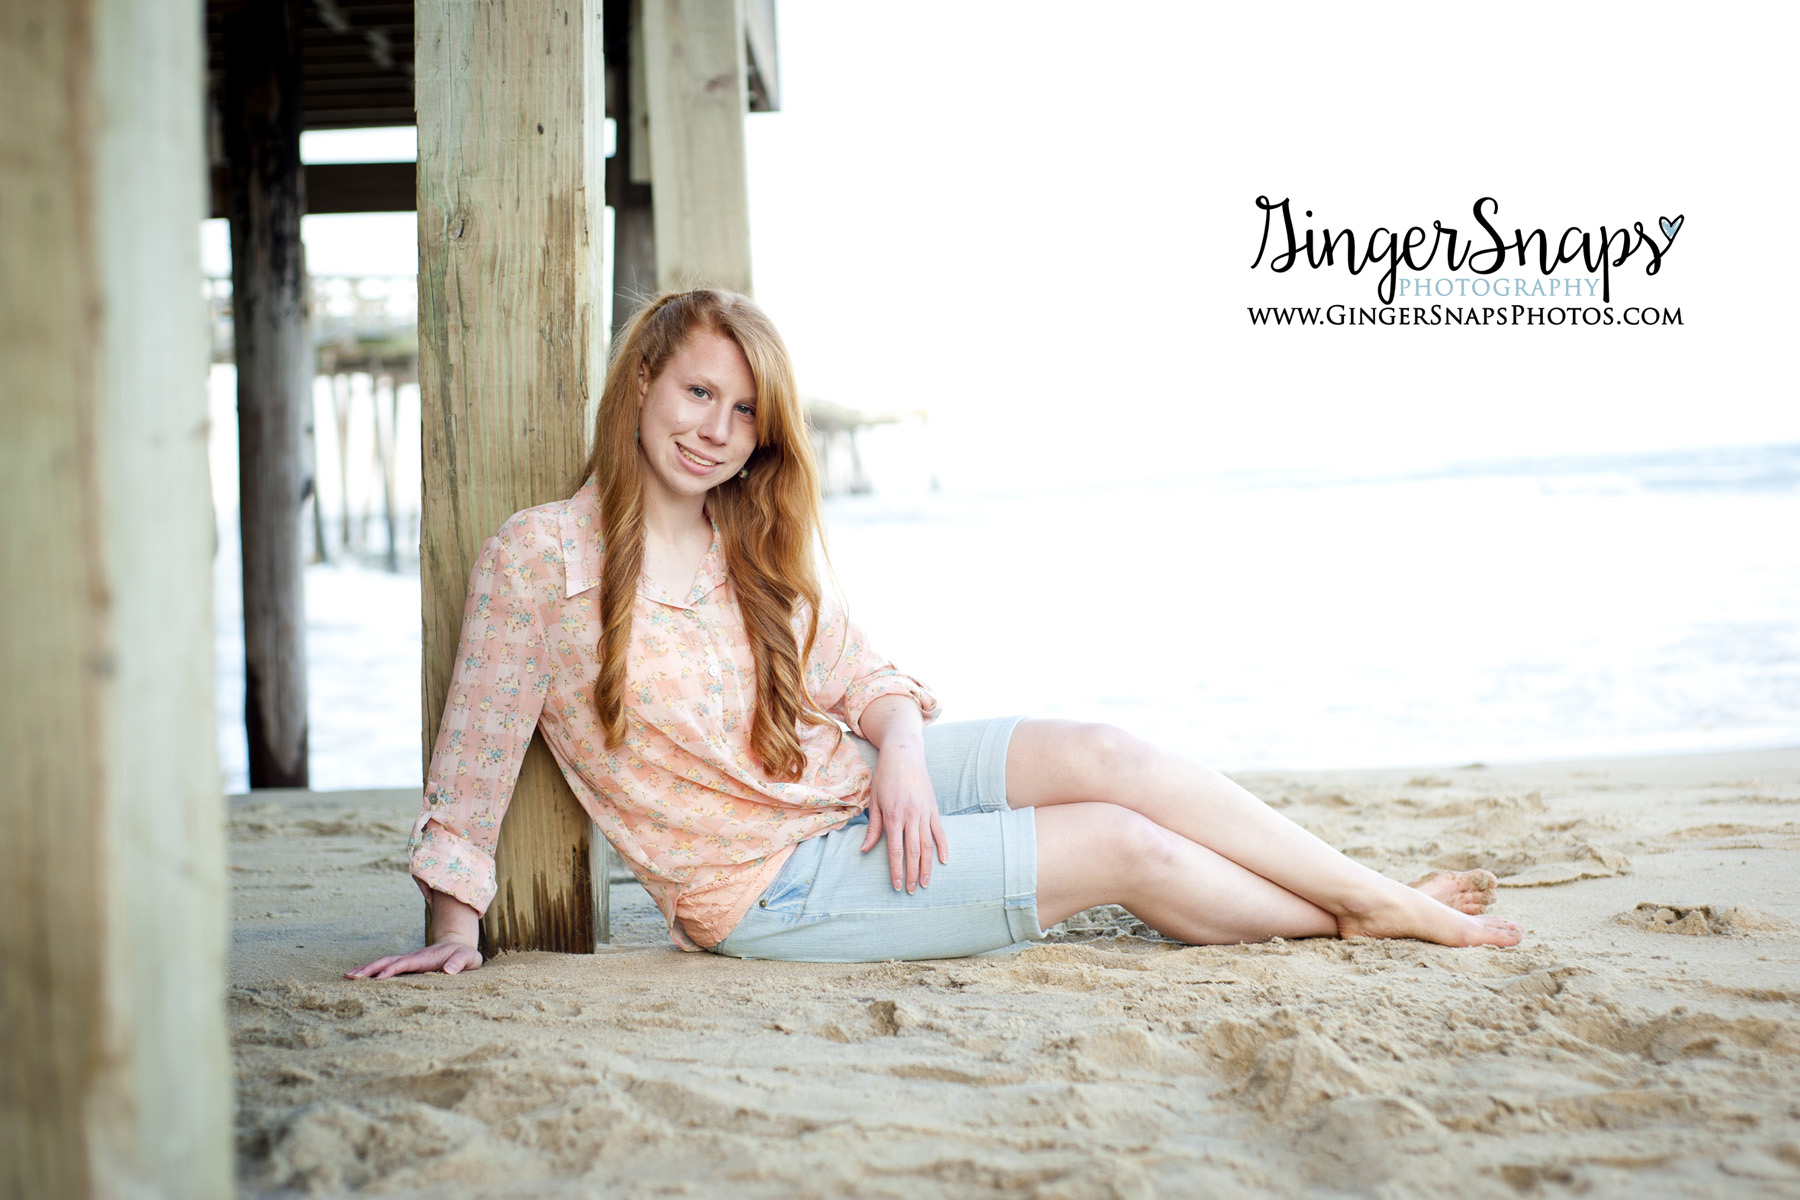 GingerSnaps Photography - 11.jpg